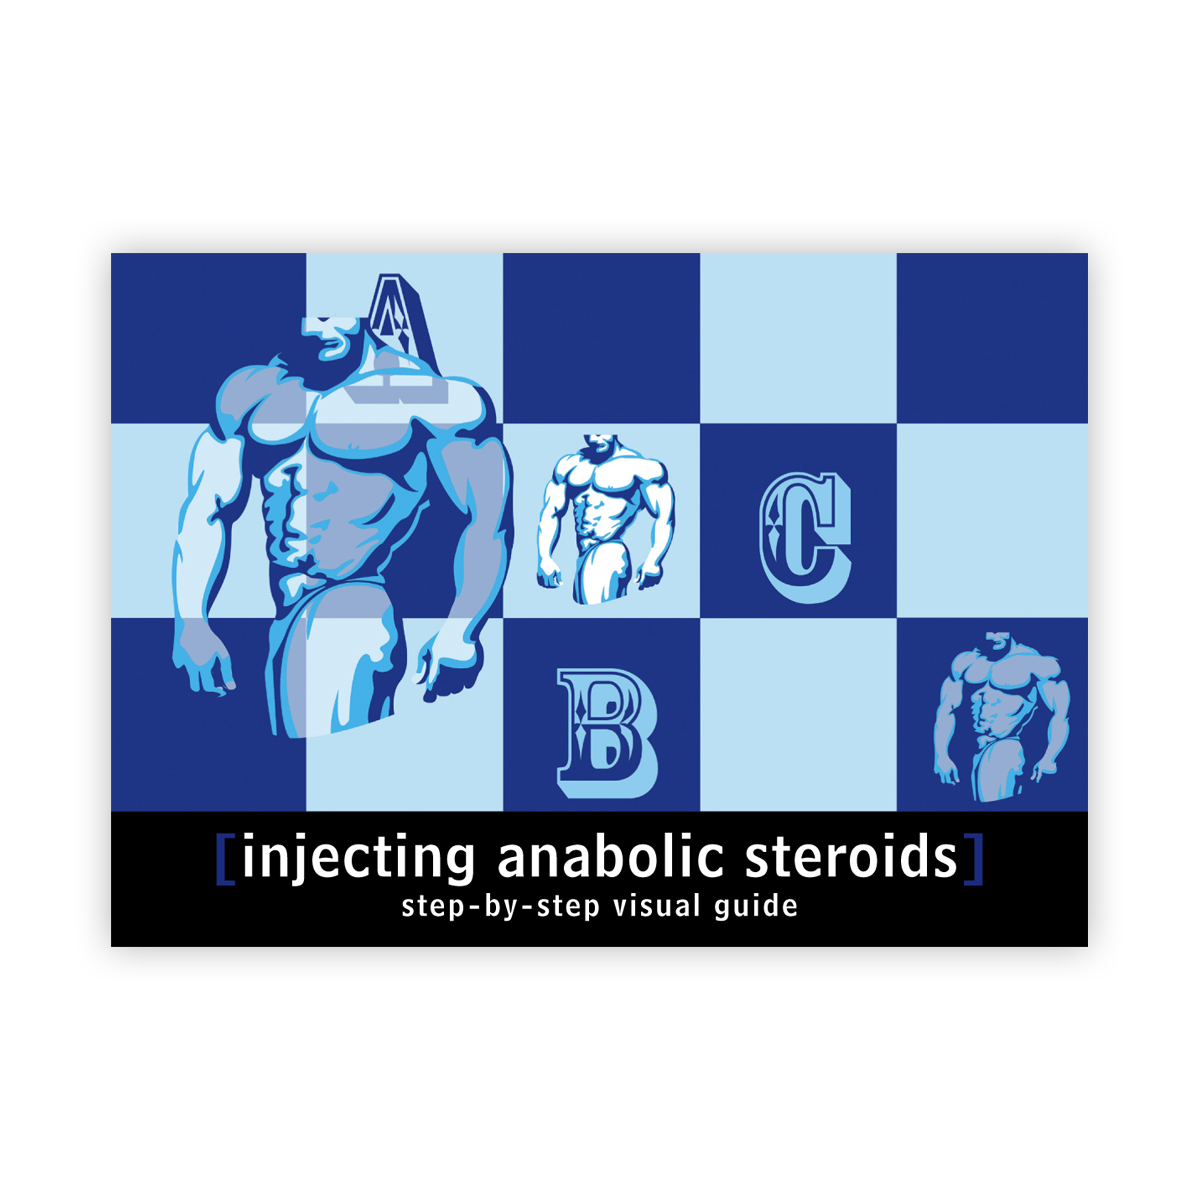 Injecting anabolic steroids